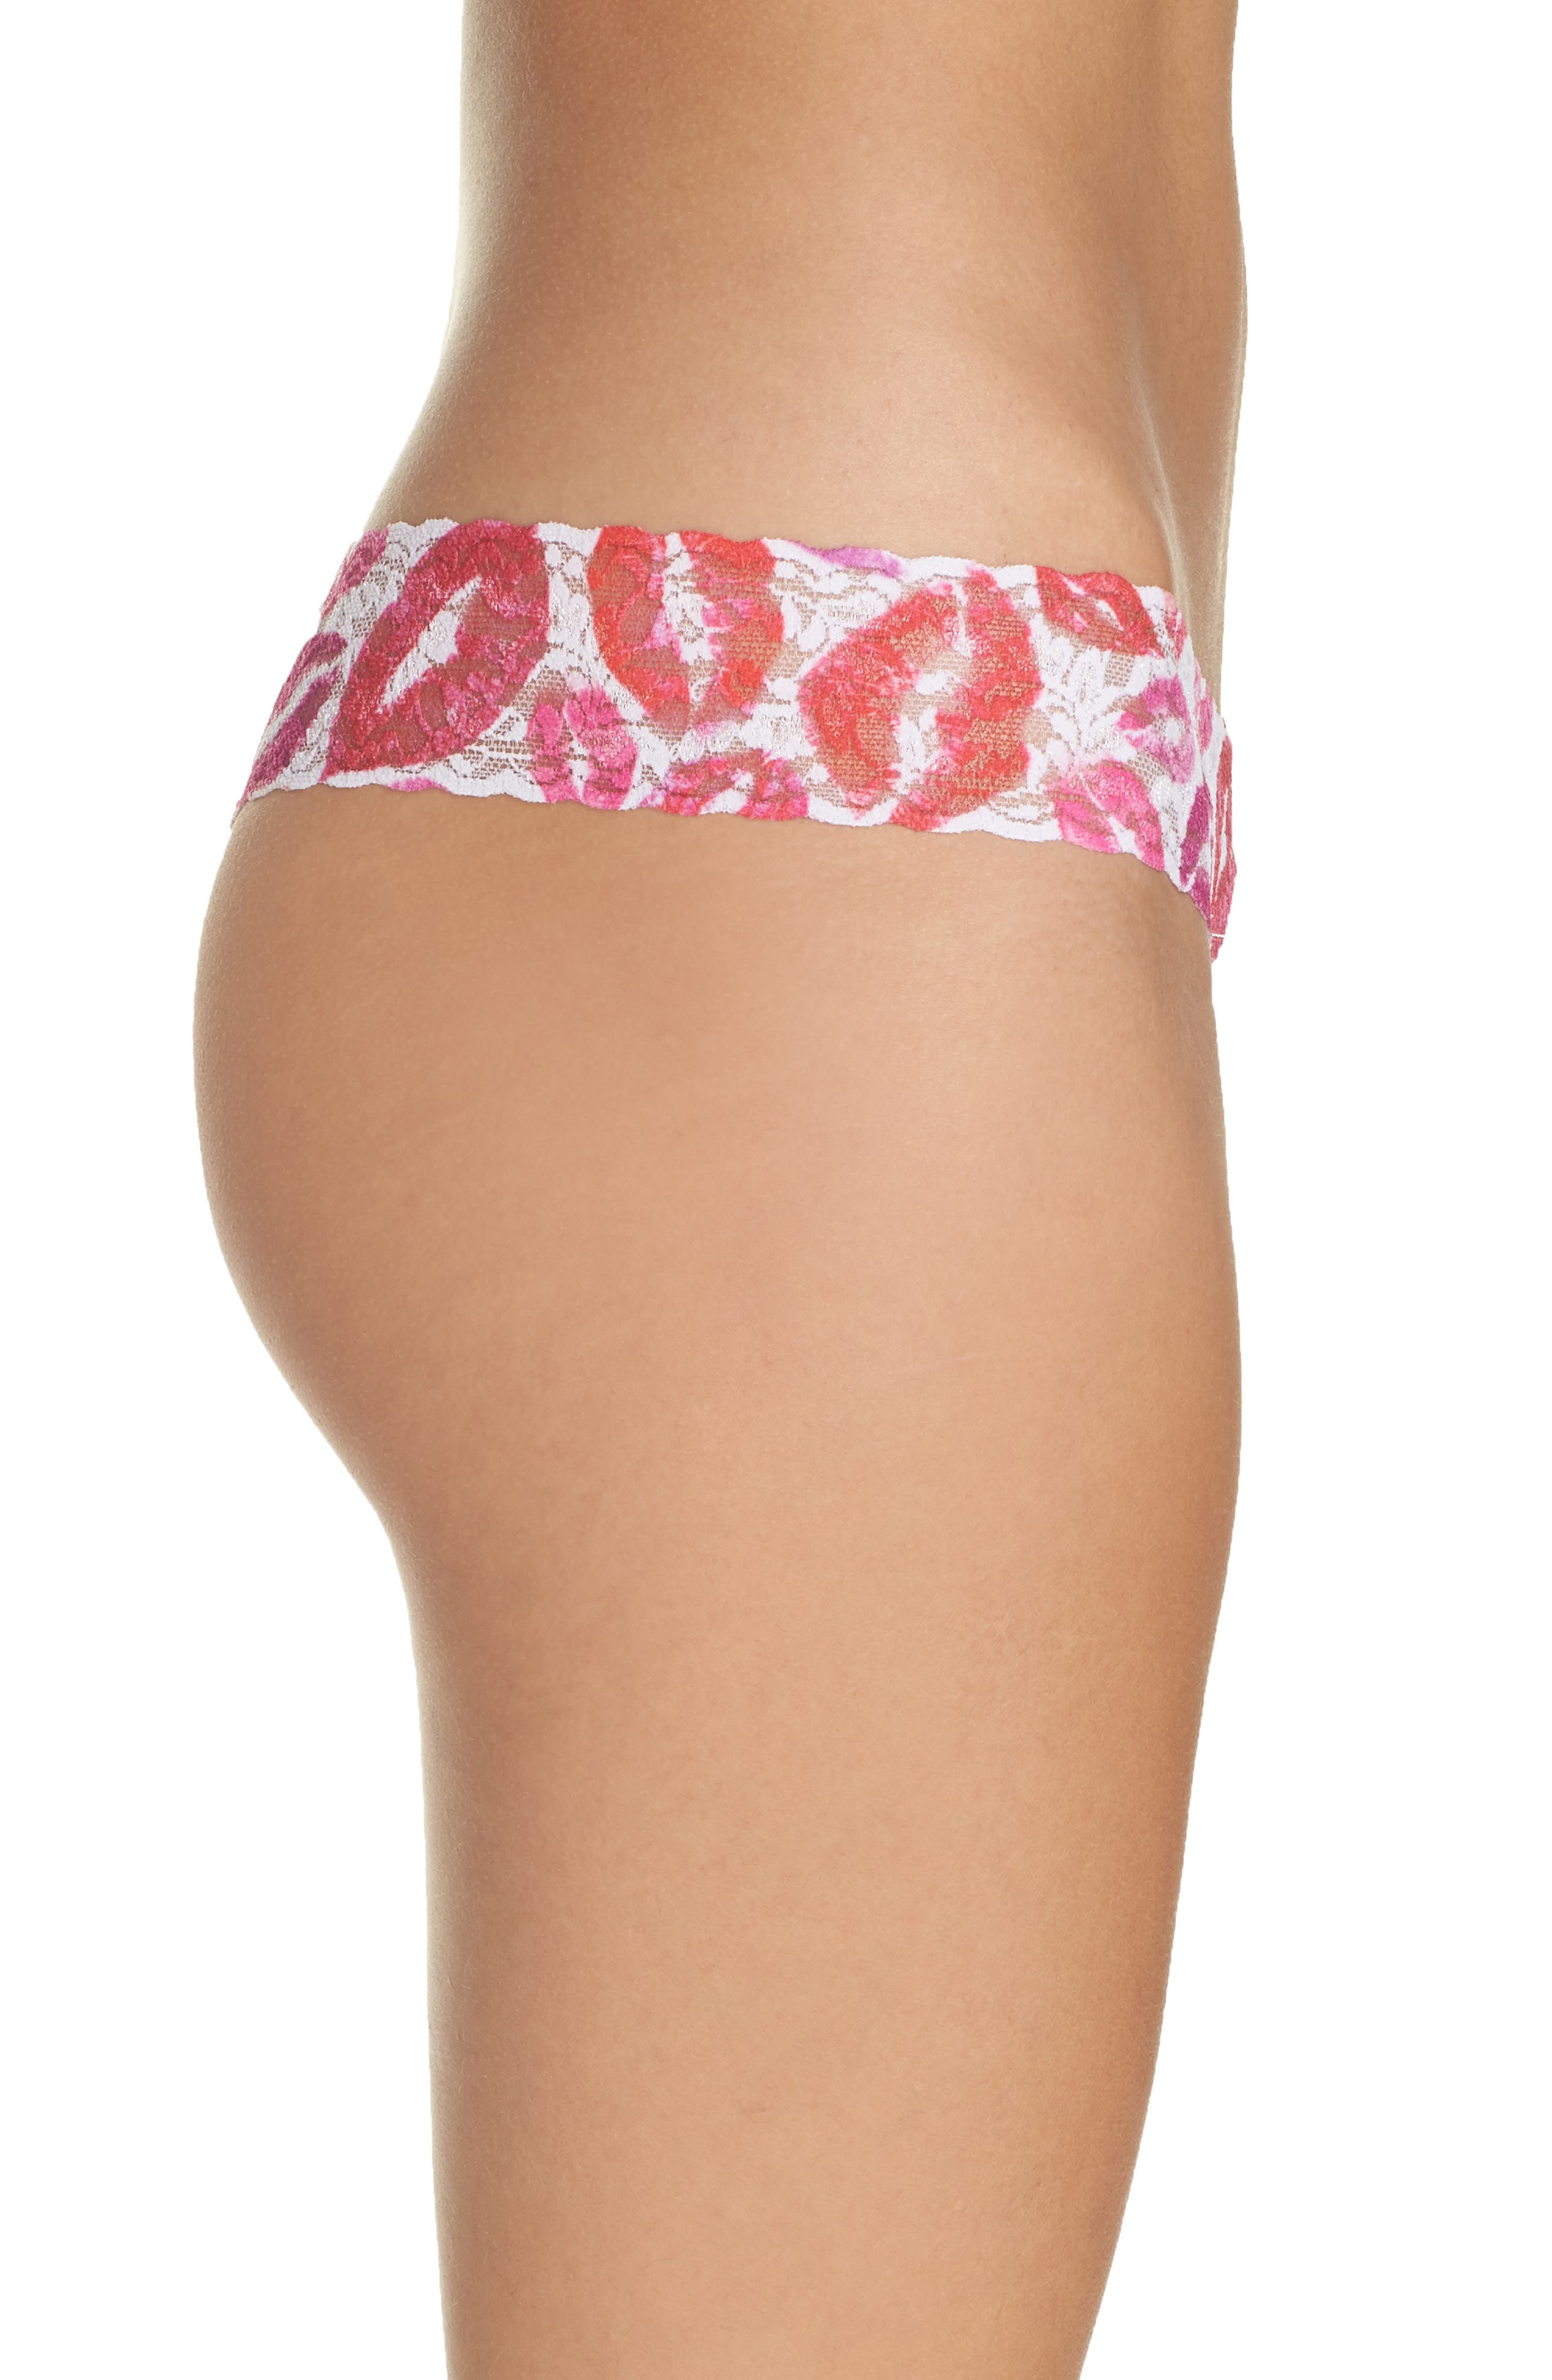 Alternate Image 3  - Hanky Panky Valentines Low Rise Thong